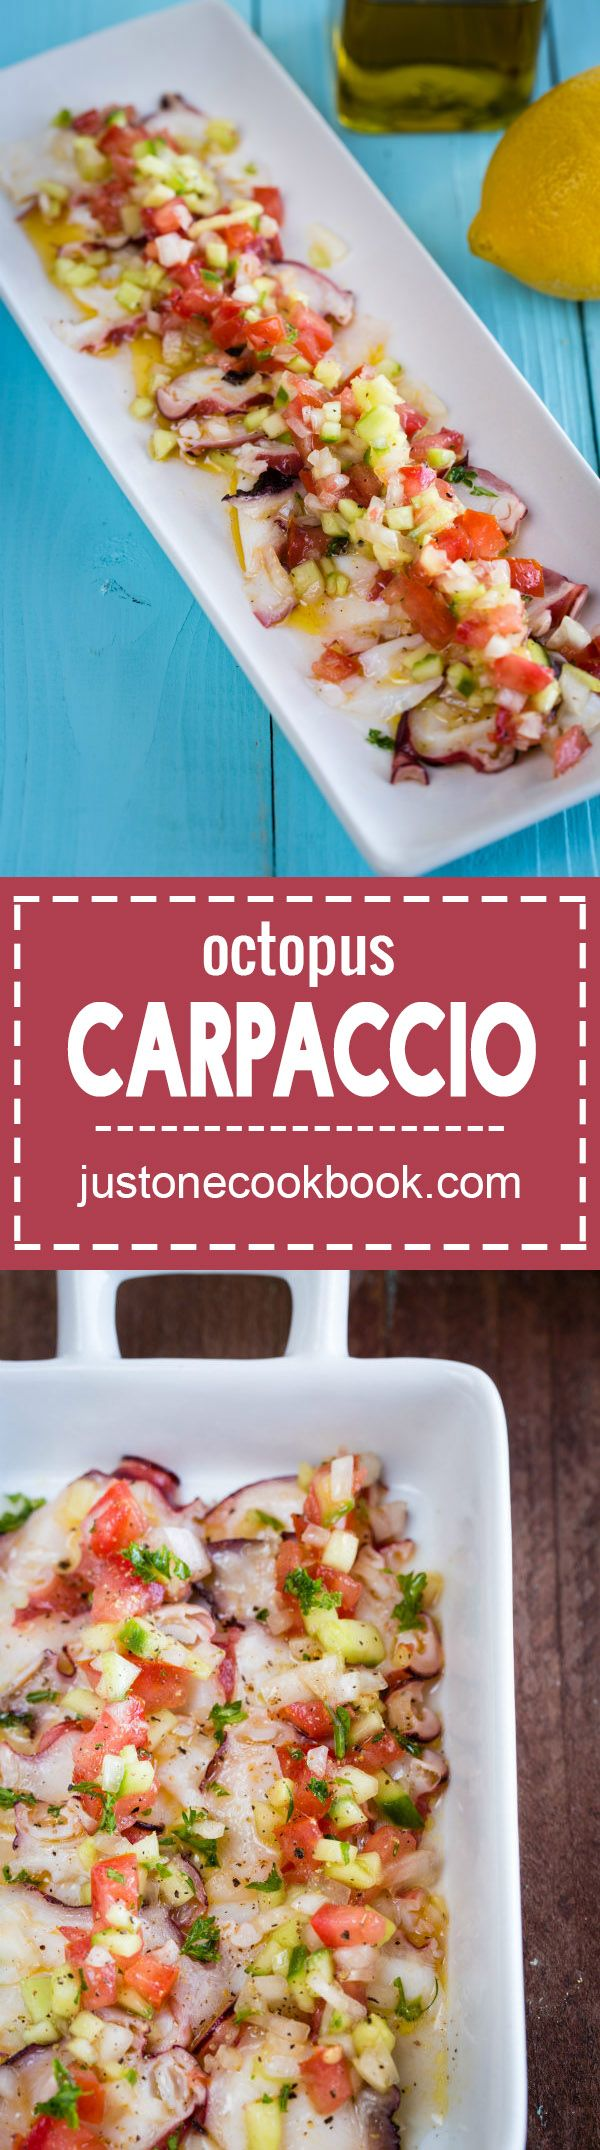 Octopus Carpaccio (たこのカルパッチョ) | Easy Japanese Recipes at JustOneCookbook.com